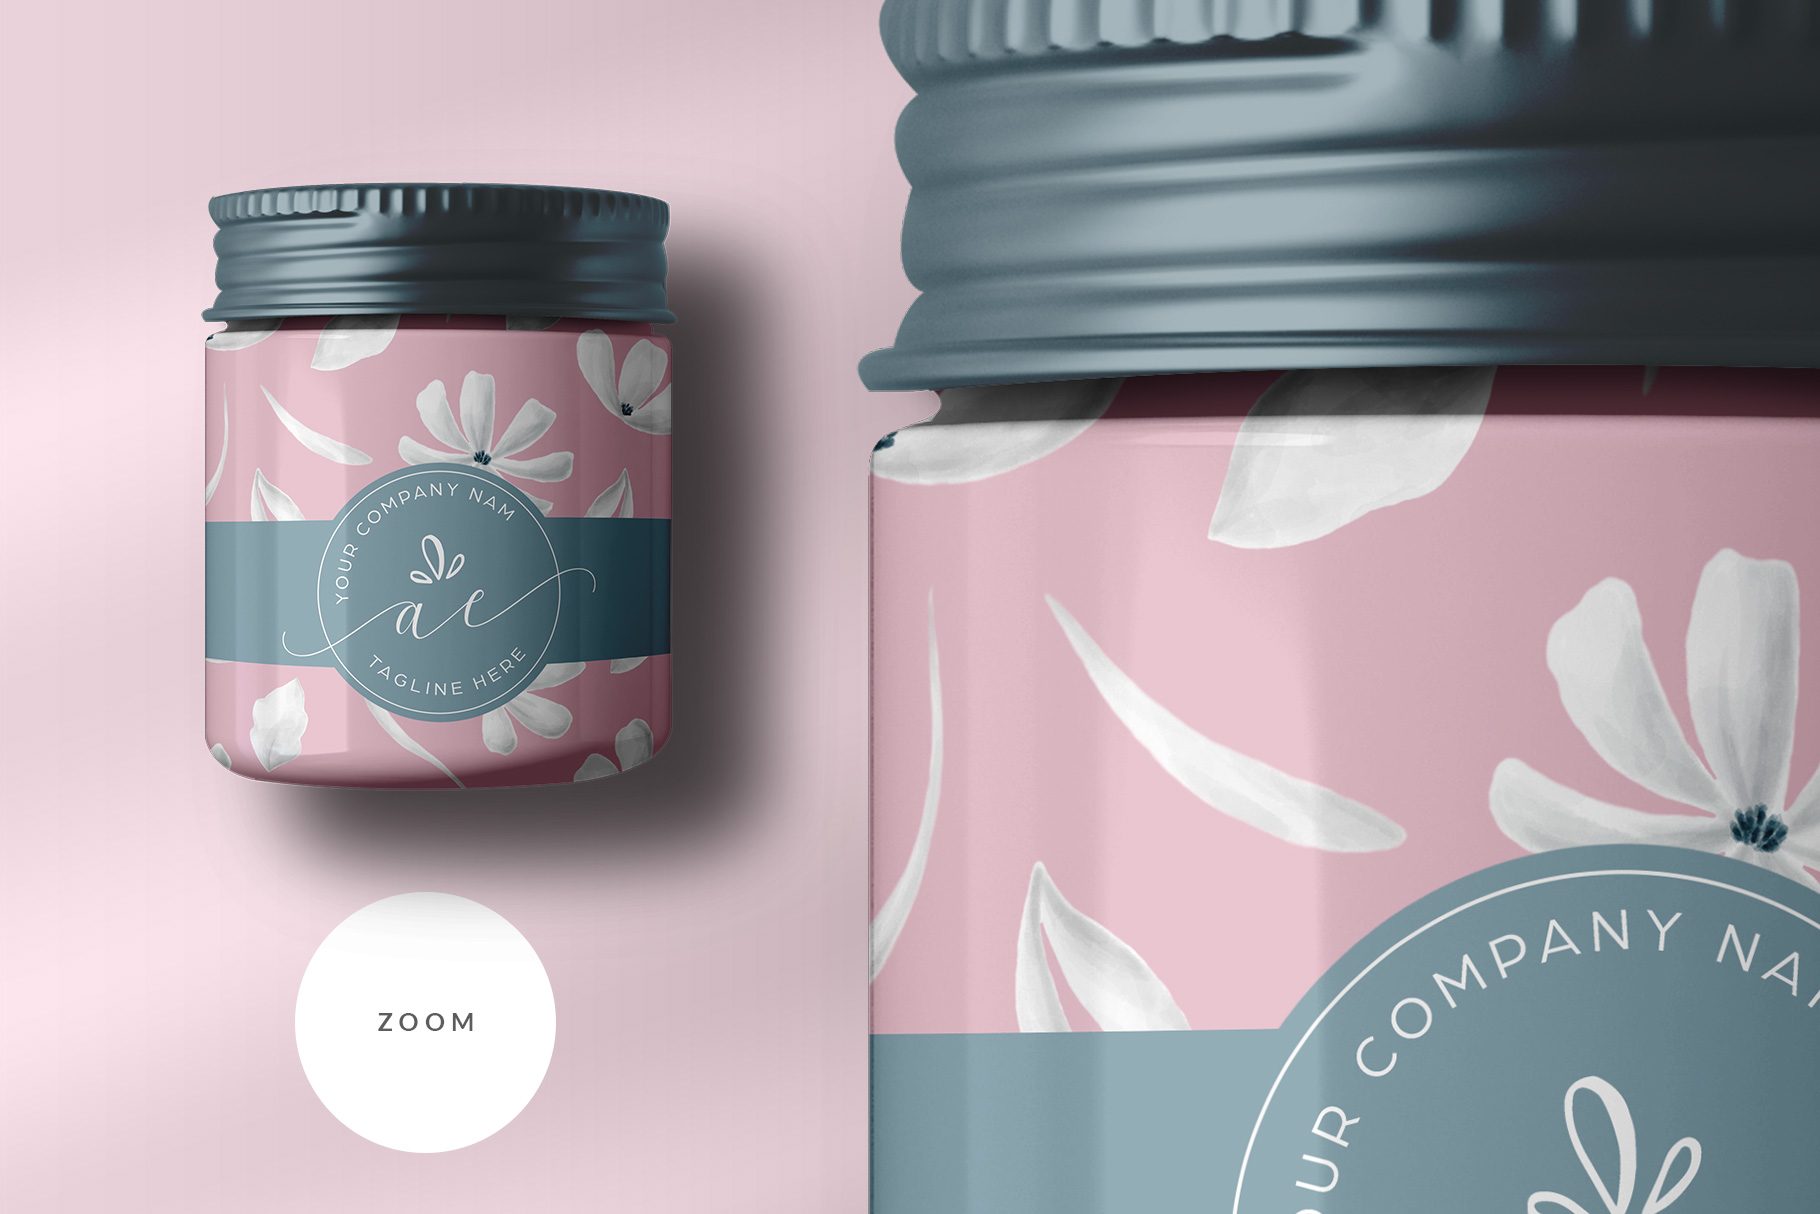 zoomed in image of the top view cosmetic bottle and box packaging mockup